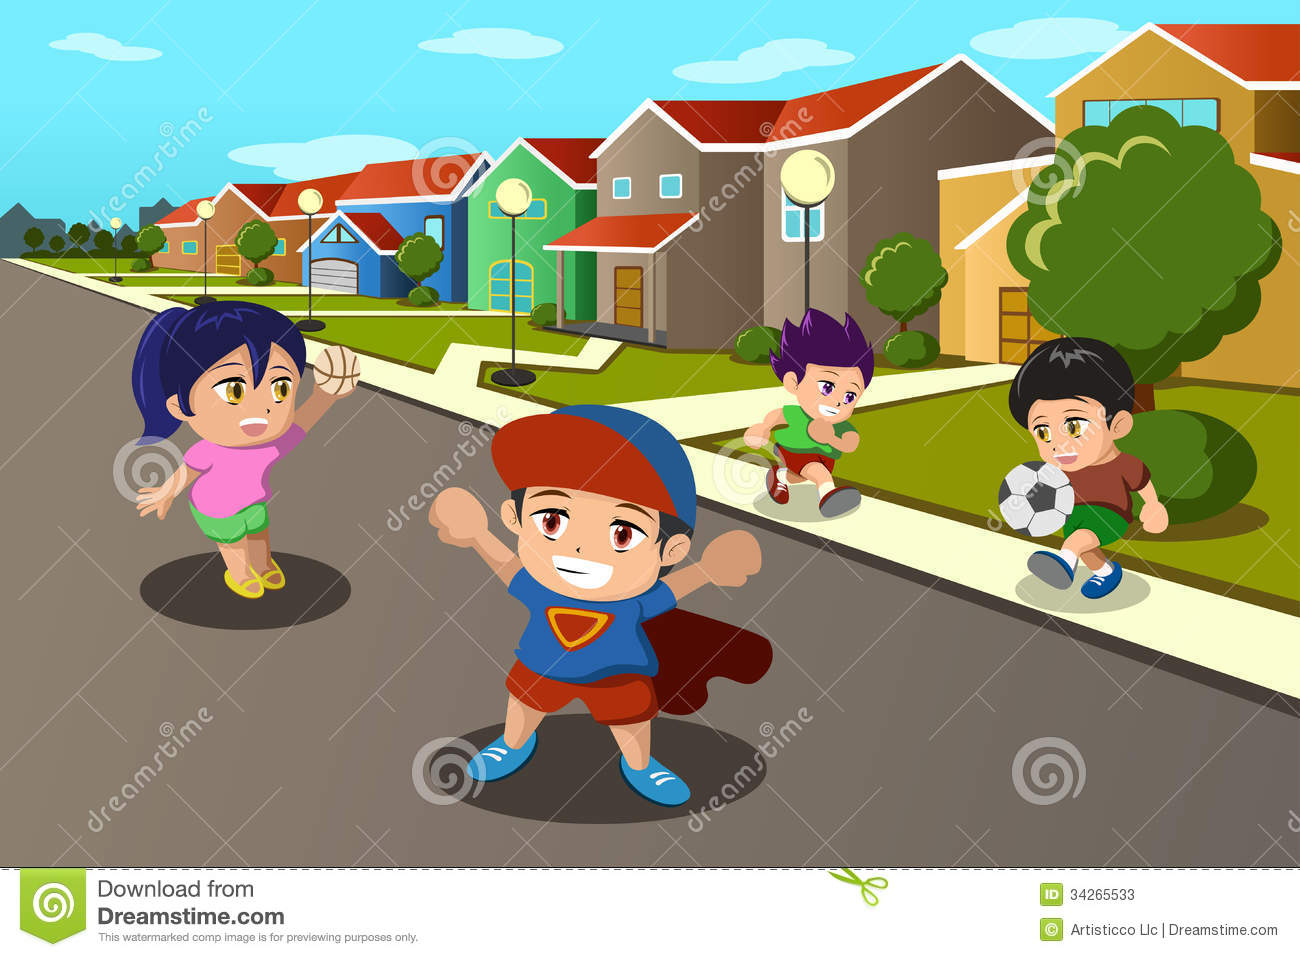 Neighbor clip art clipart images gallery for free download.